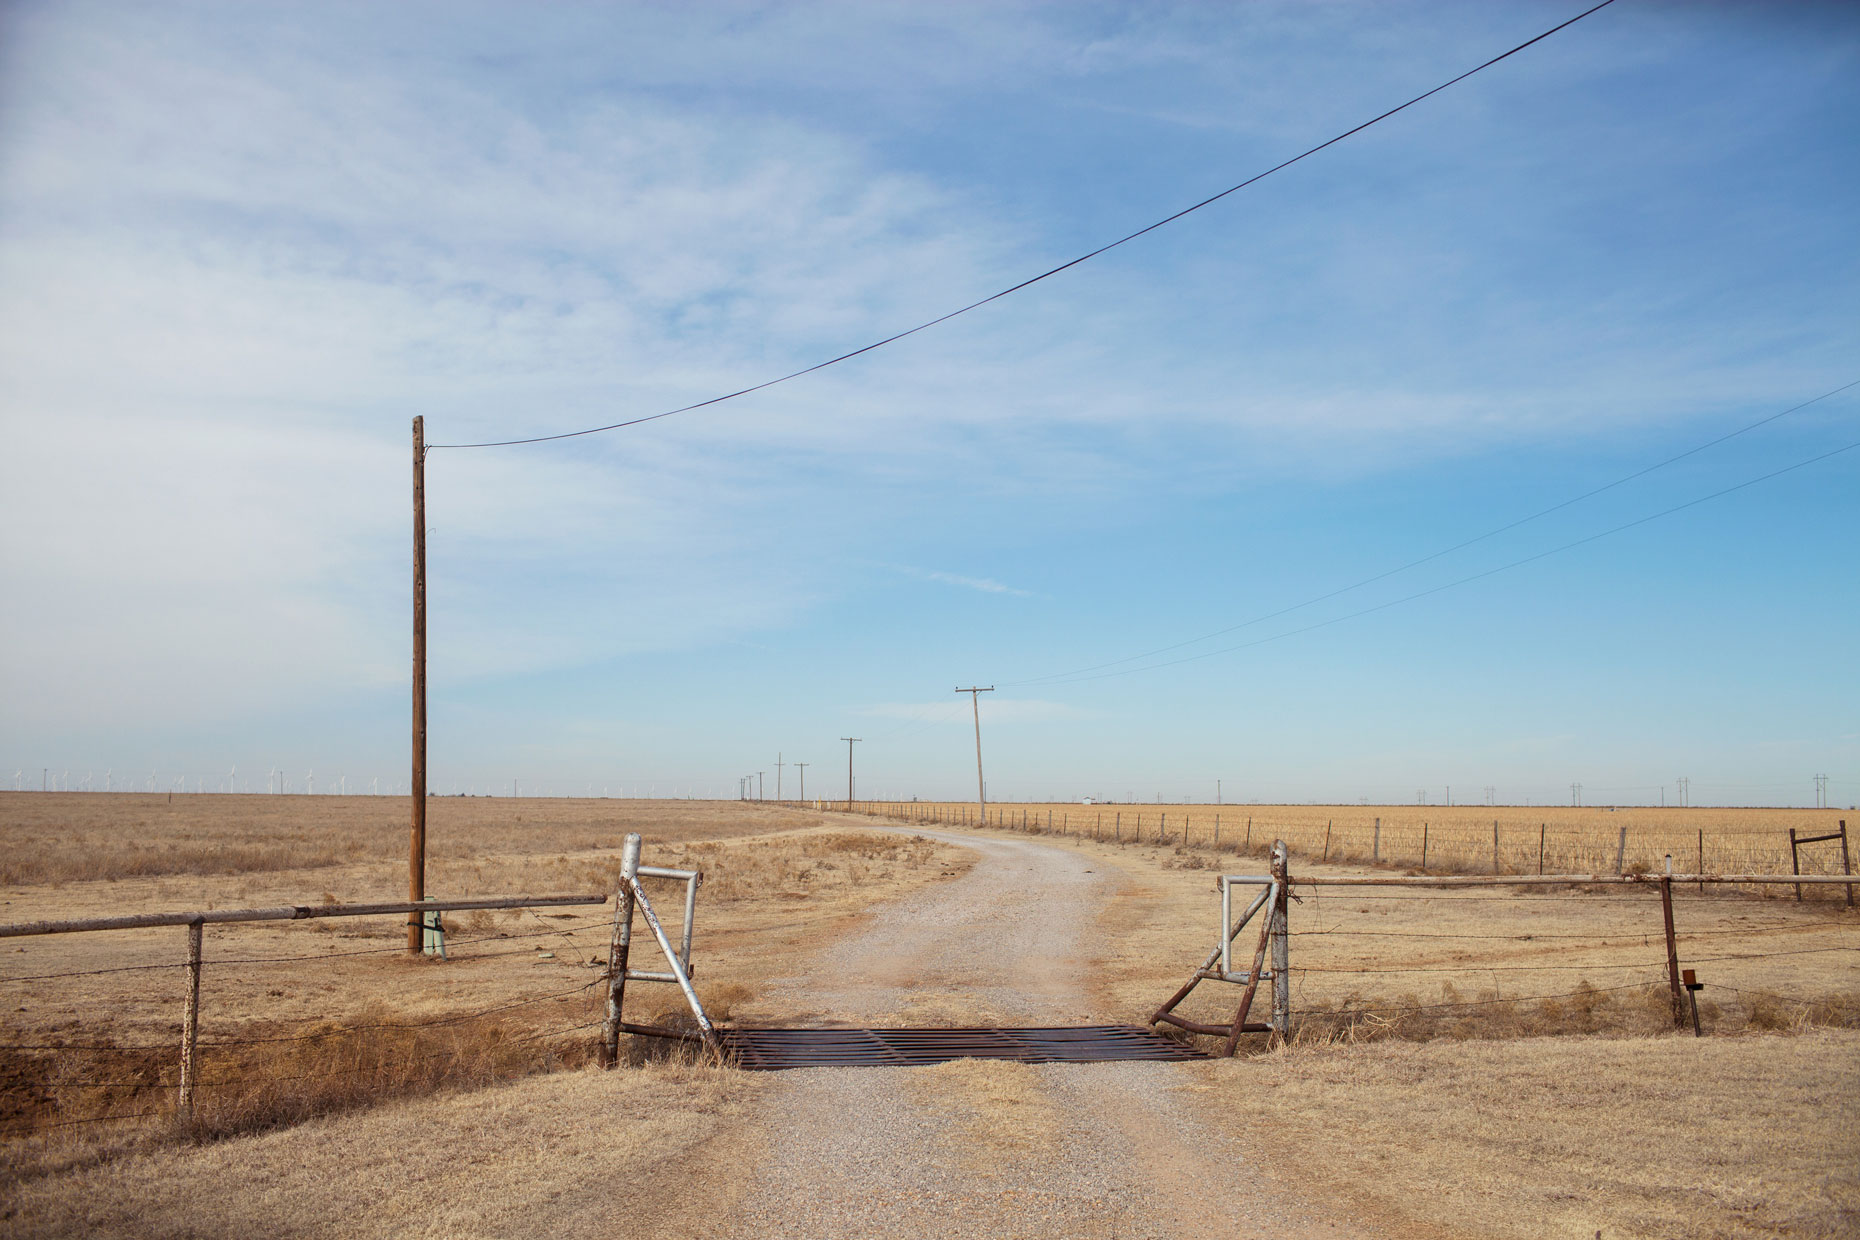 Ranch road in the Texas Panhandle